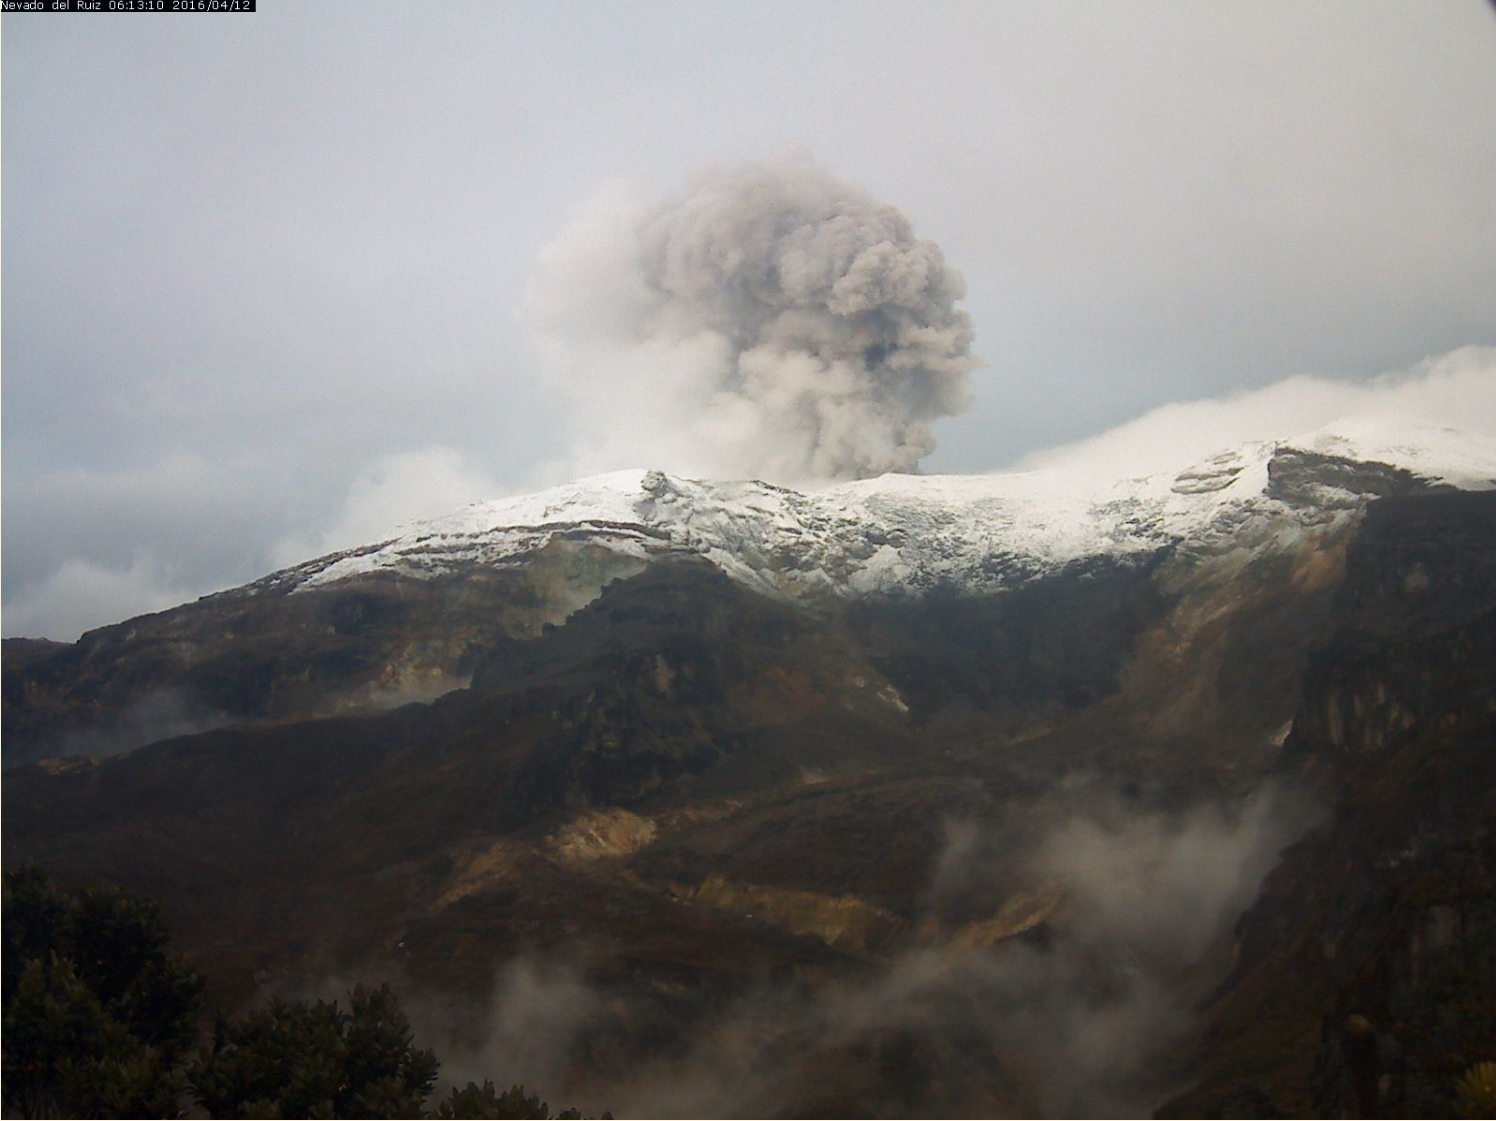 Nevado del Ruiz - image archives SGC 2016.04.12